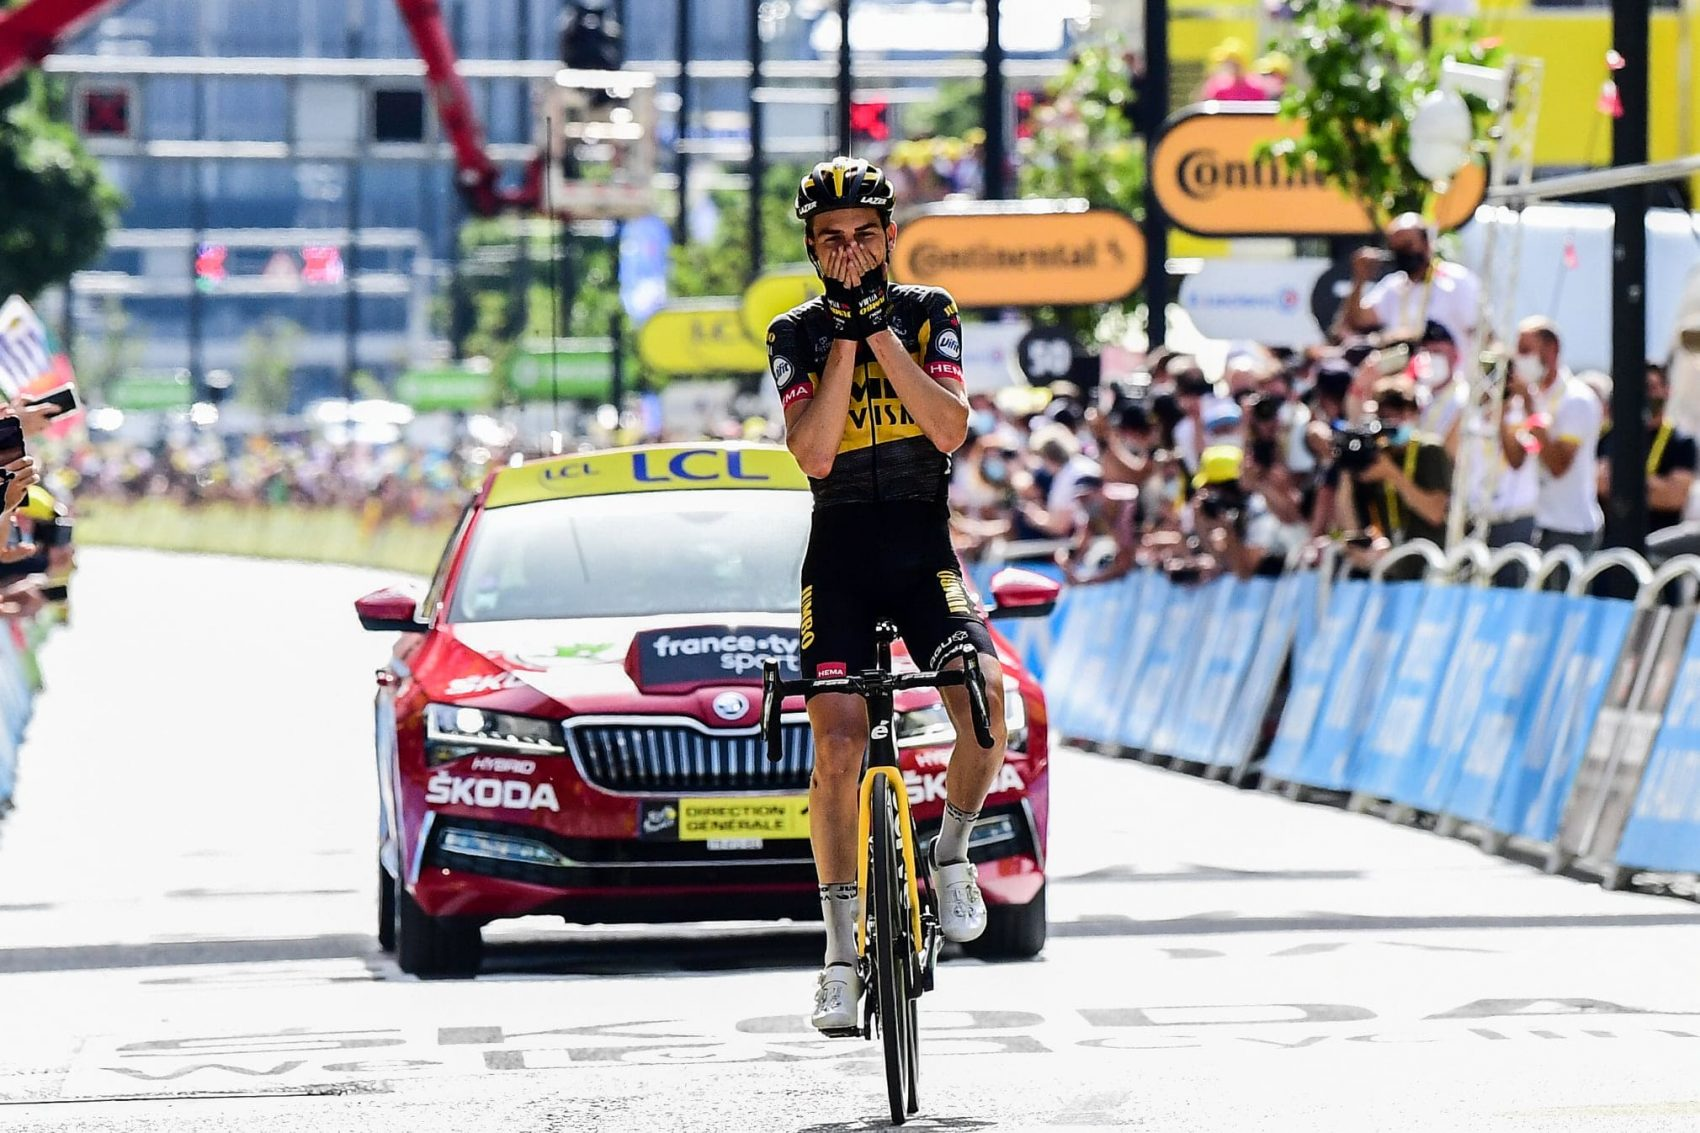 American Wins a stage of the Tour